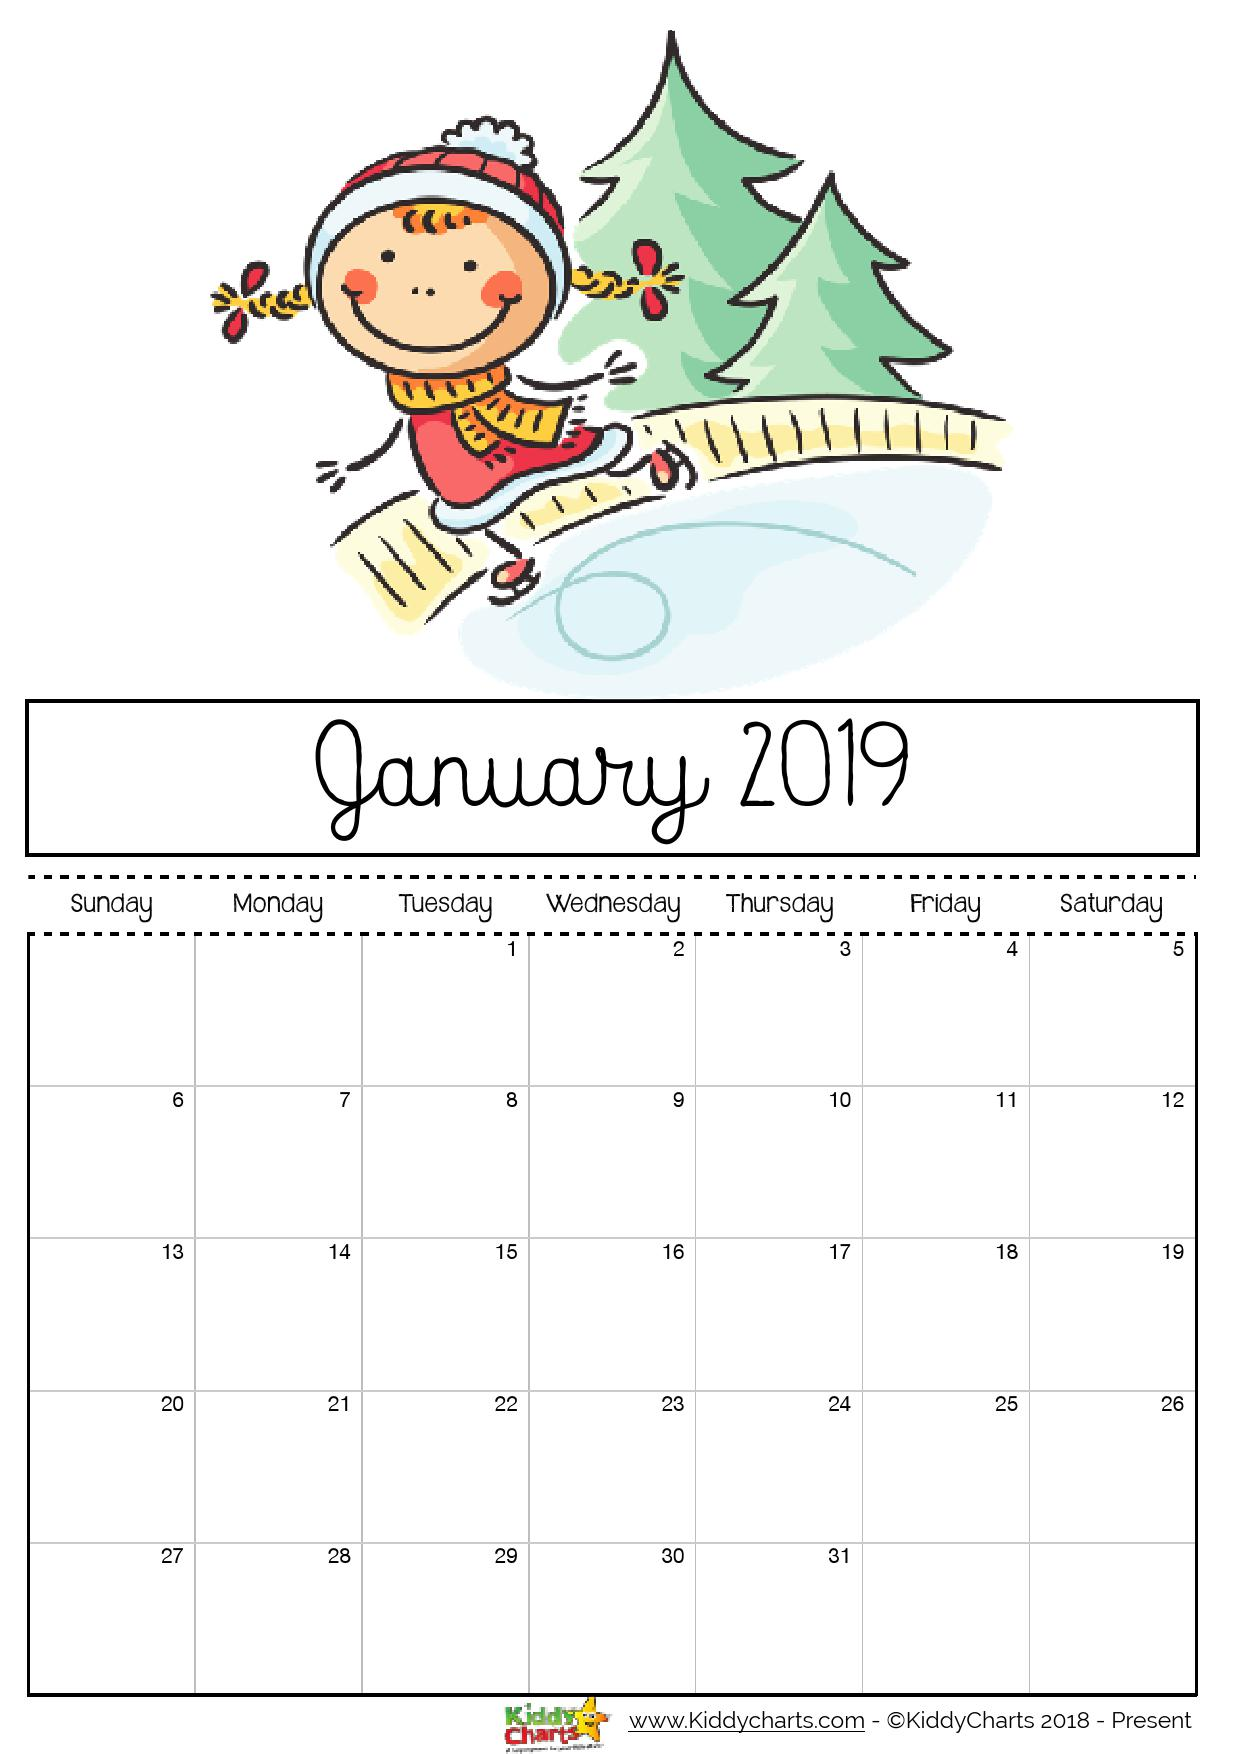 Girl playing on an ice rink. Perhaps something you can do too?!? #calendar2019 #printables #kidsprintables